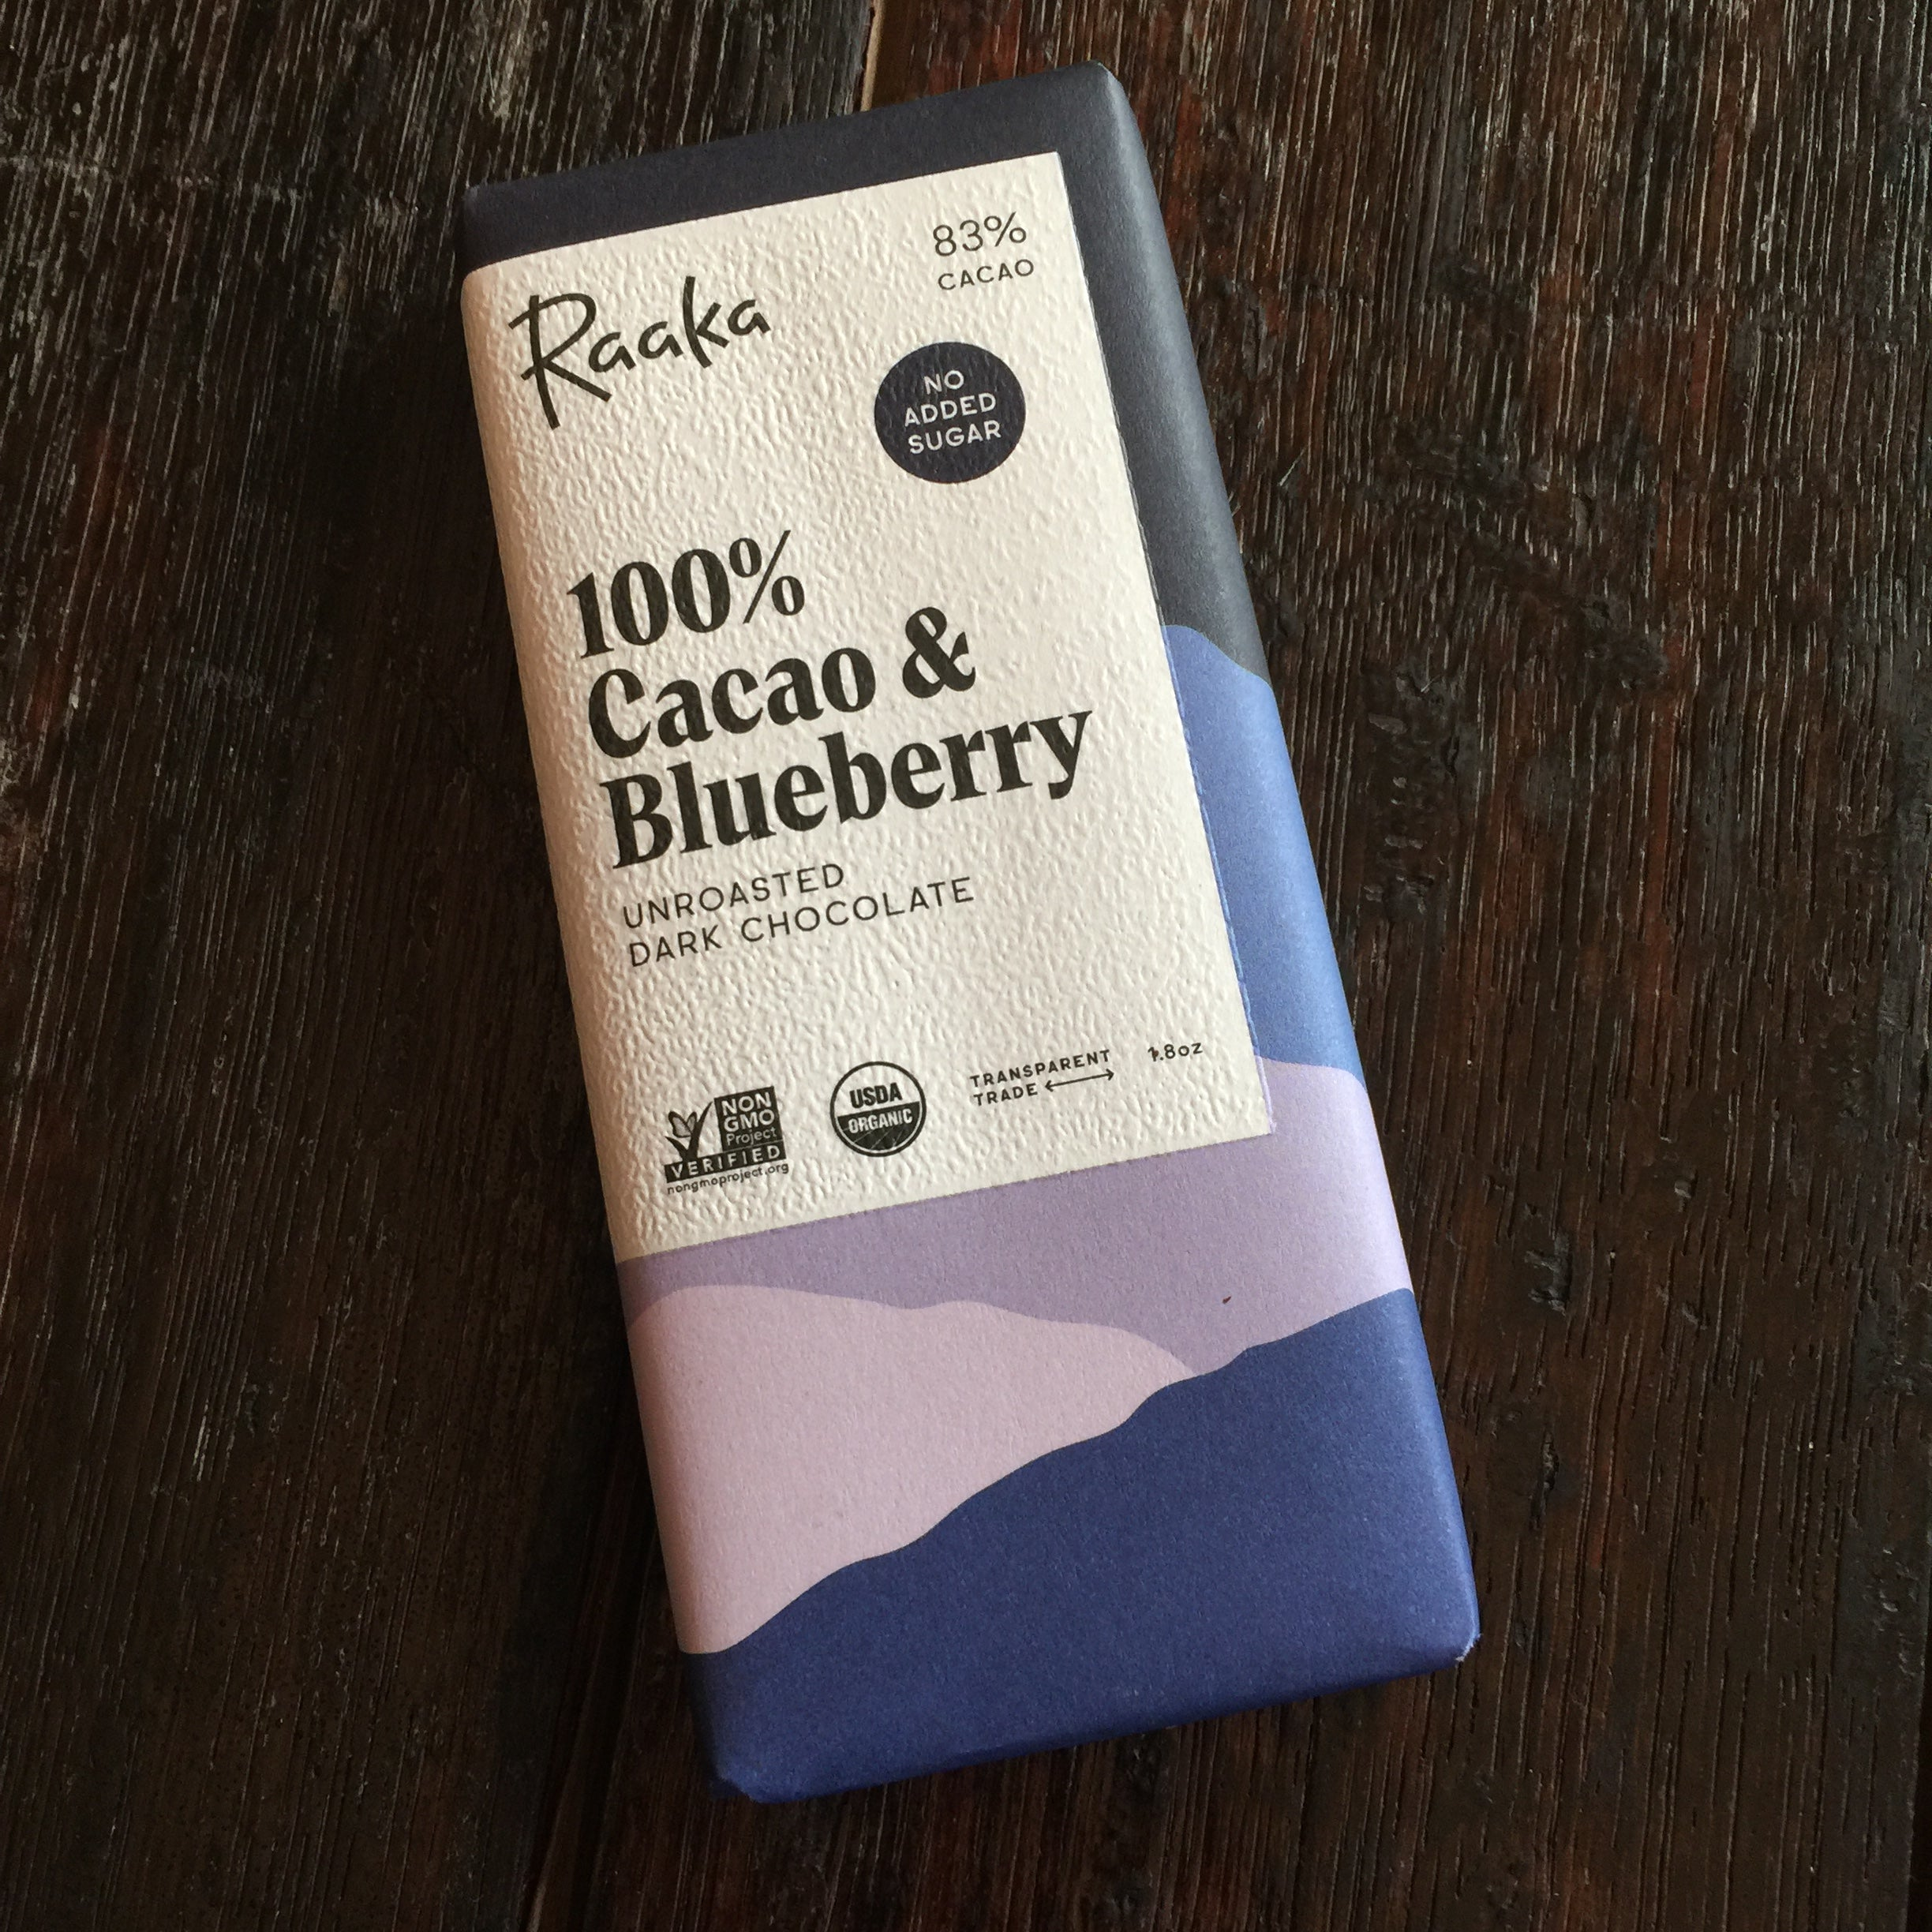 Raaka Unroasted Dark Chocolate Sugar Cane Free - 100% Cacao & Blueberry Bar